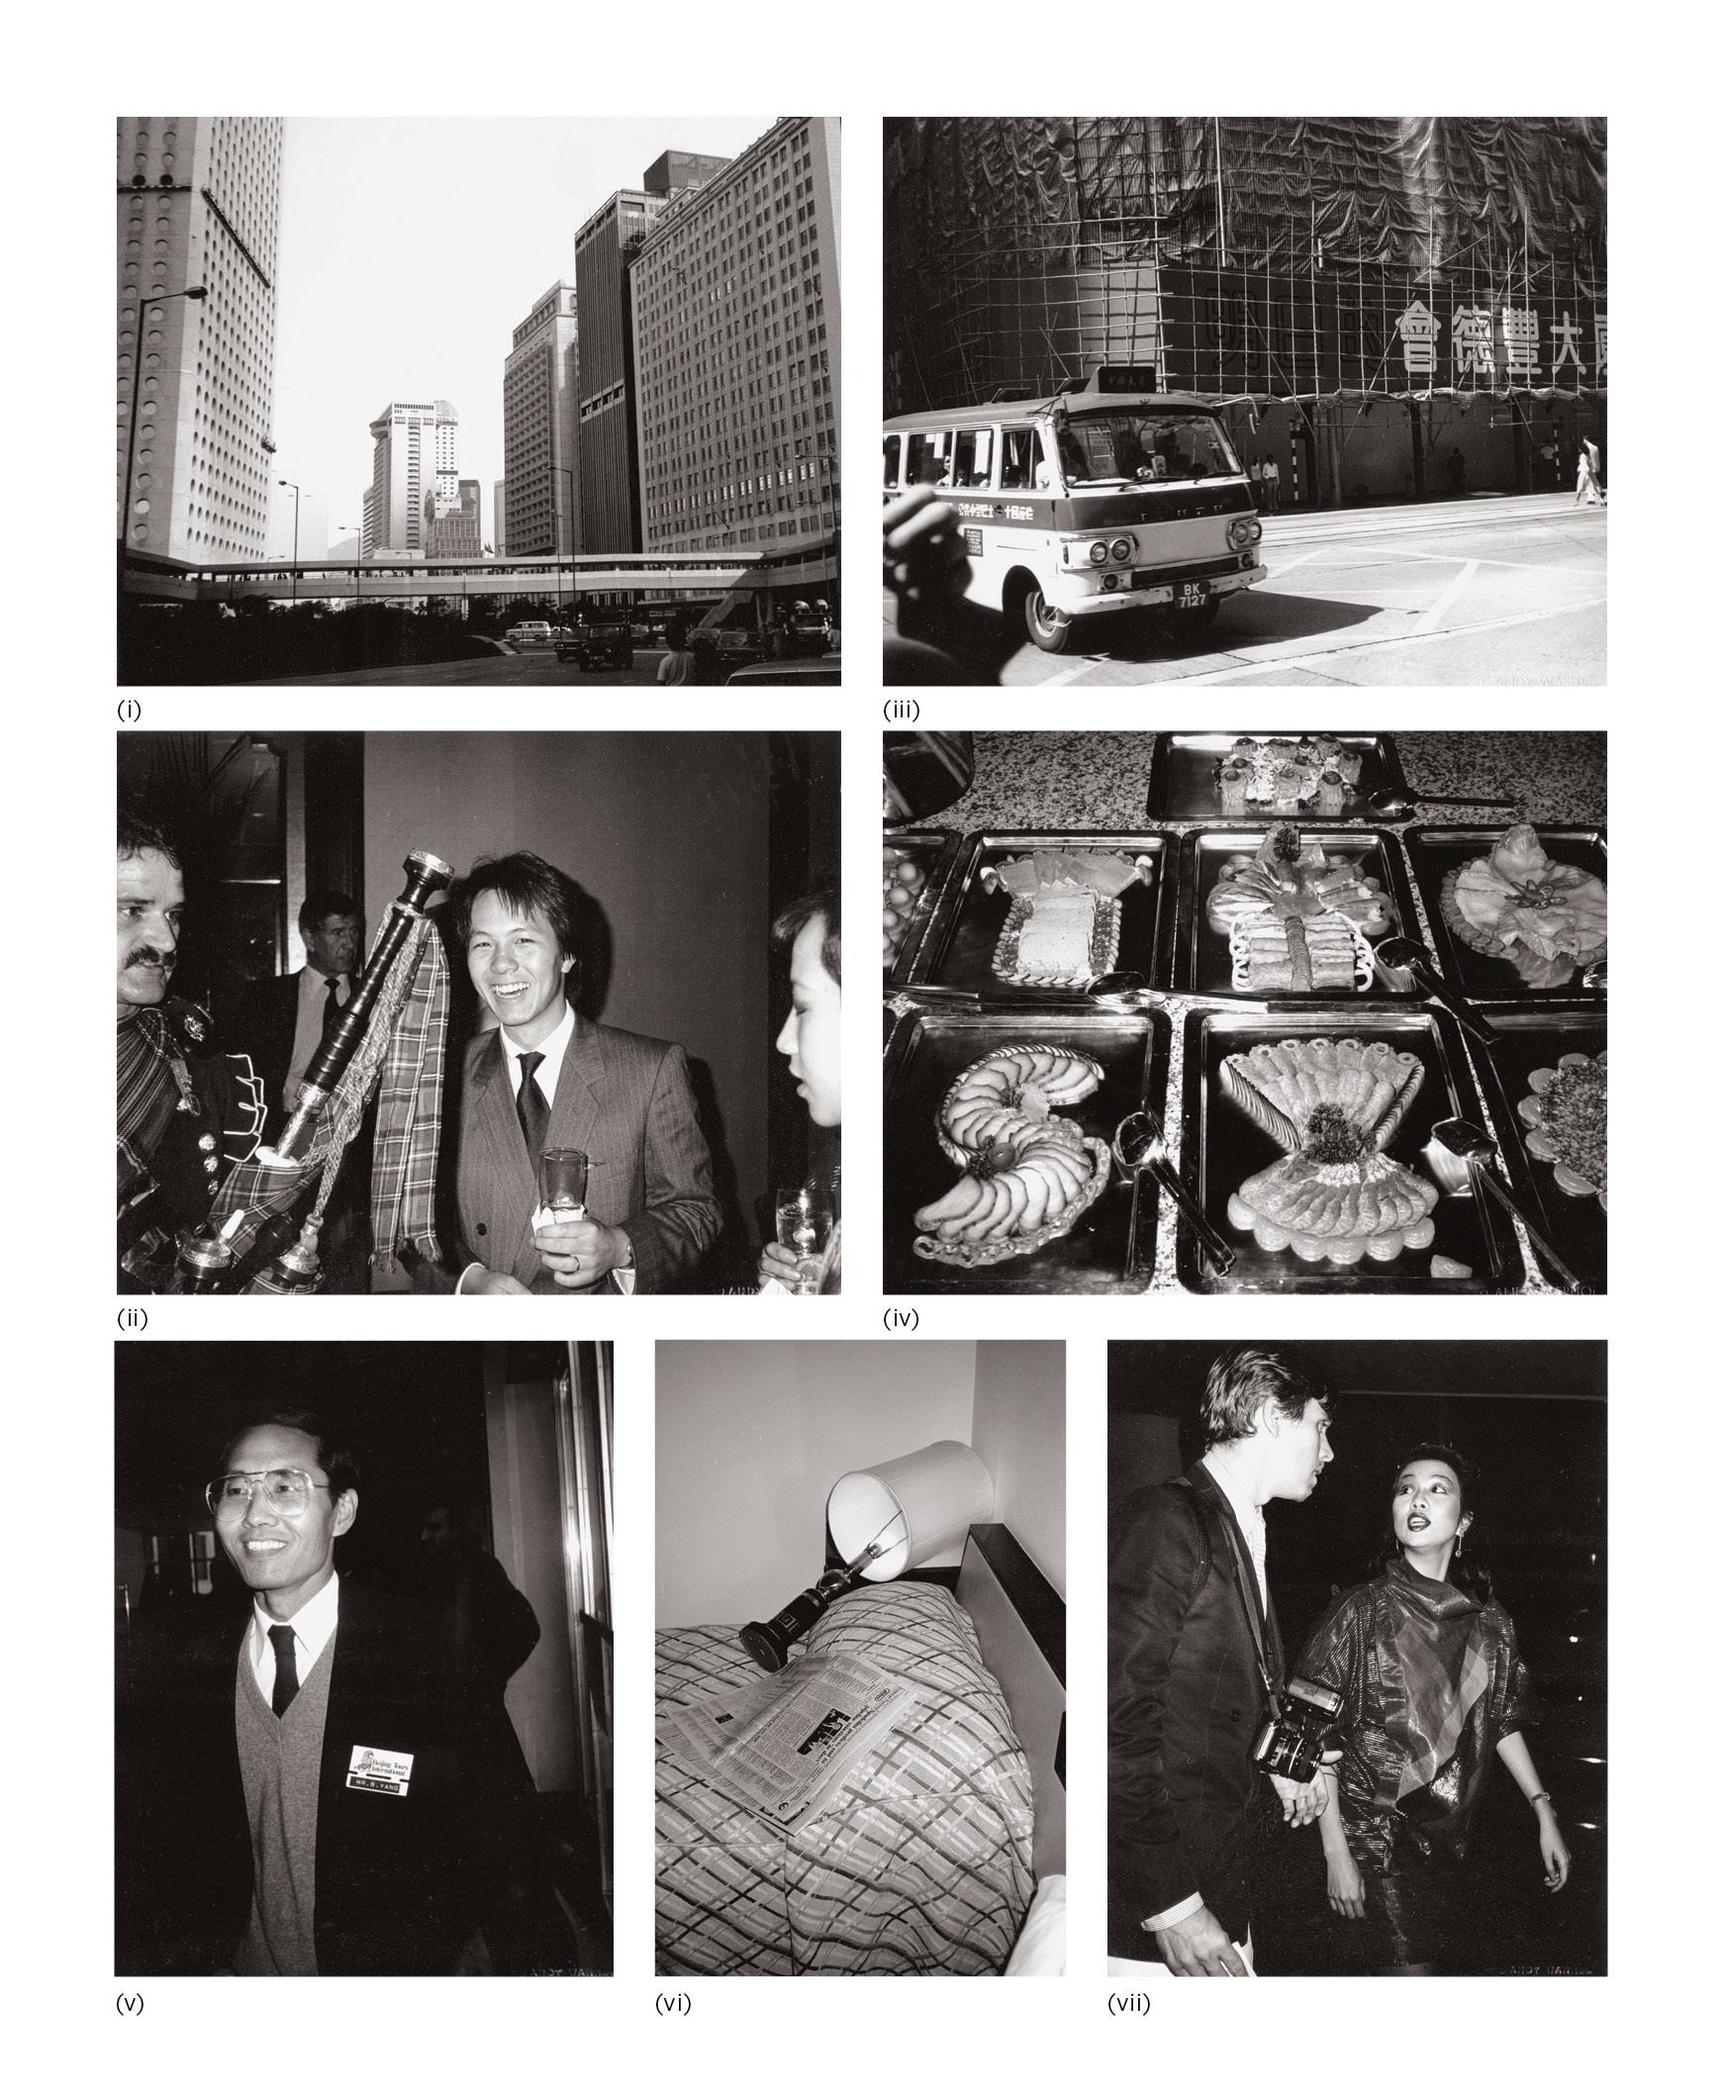 Andy Warhol-Seven Works: (I) Hong Kong; (II) Alfred Siu And Partygoers; (III) Hong Kong Street (Van); (IV) Buffet; (V) Tour Guide; (VI) Hotel Room; (VII) Christopher Makos And Unidentified Woman-1982